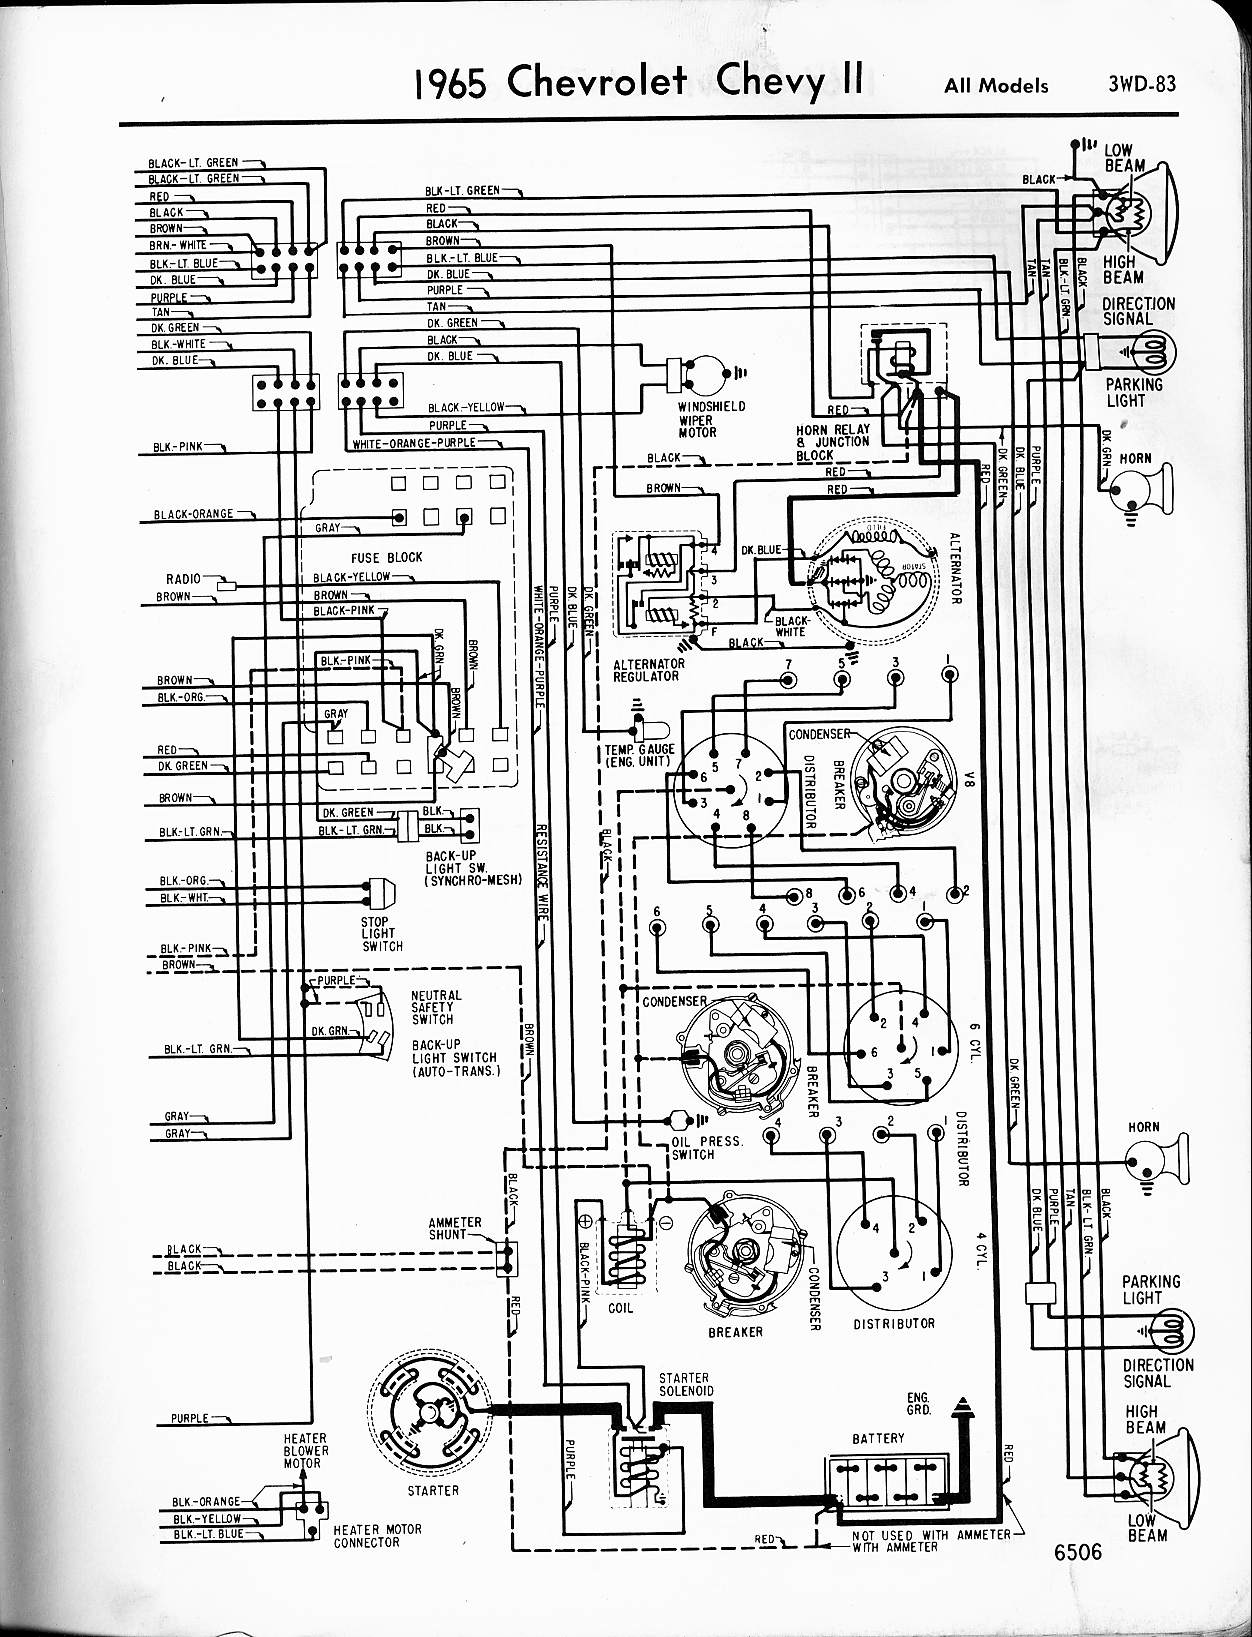 1970 buick skylark wiring diagram electrical work wiring diagram \u2022 72 buick skylark gs chevy diagrams rh wiring wizard com 1972 lincoln wiring diagrams 1972 toronado wiring diagrams